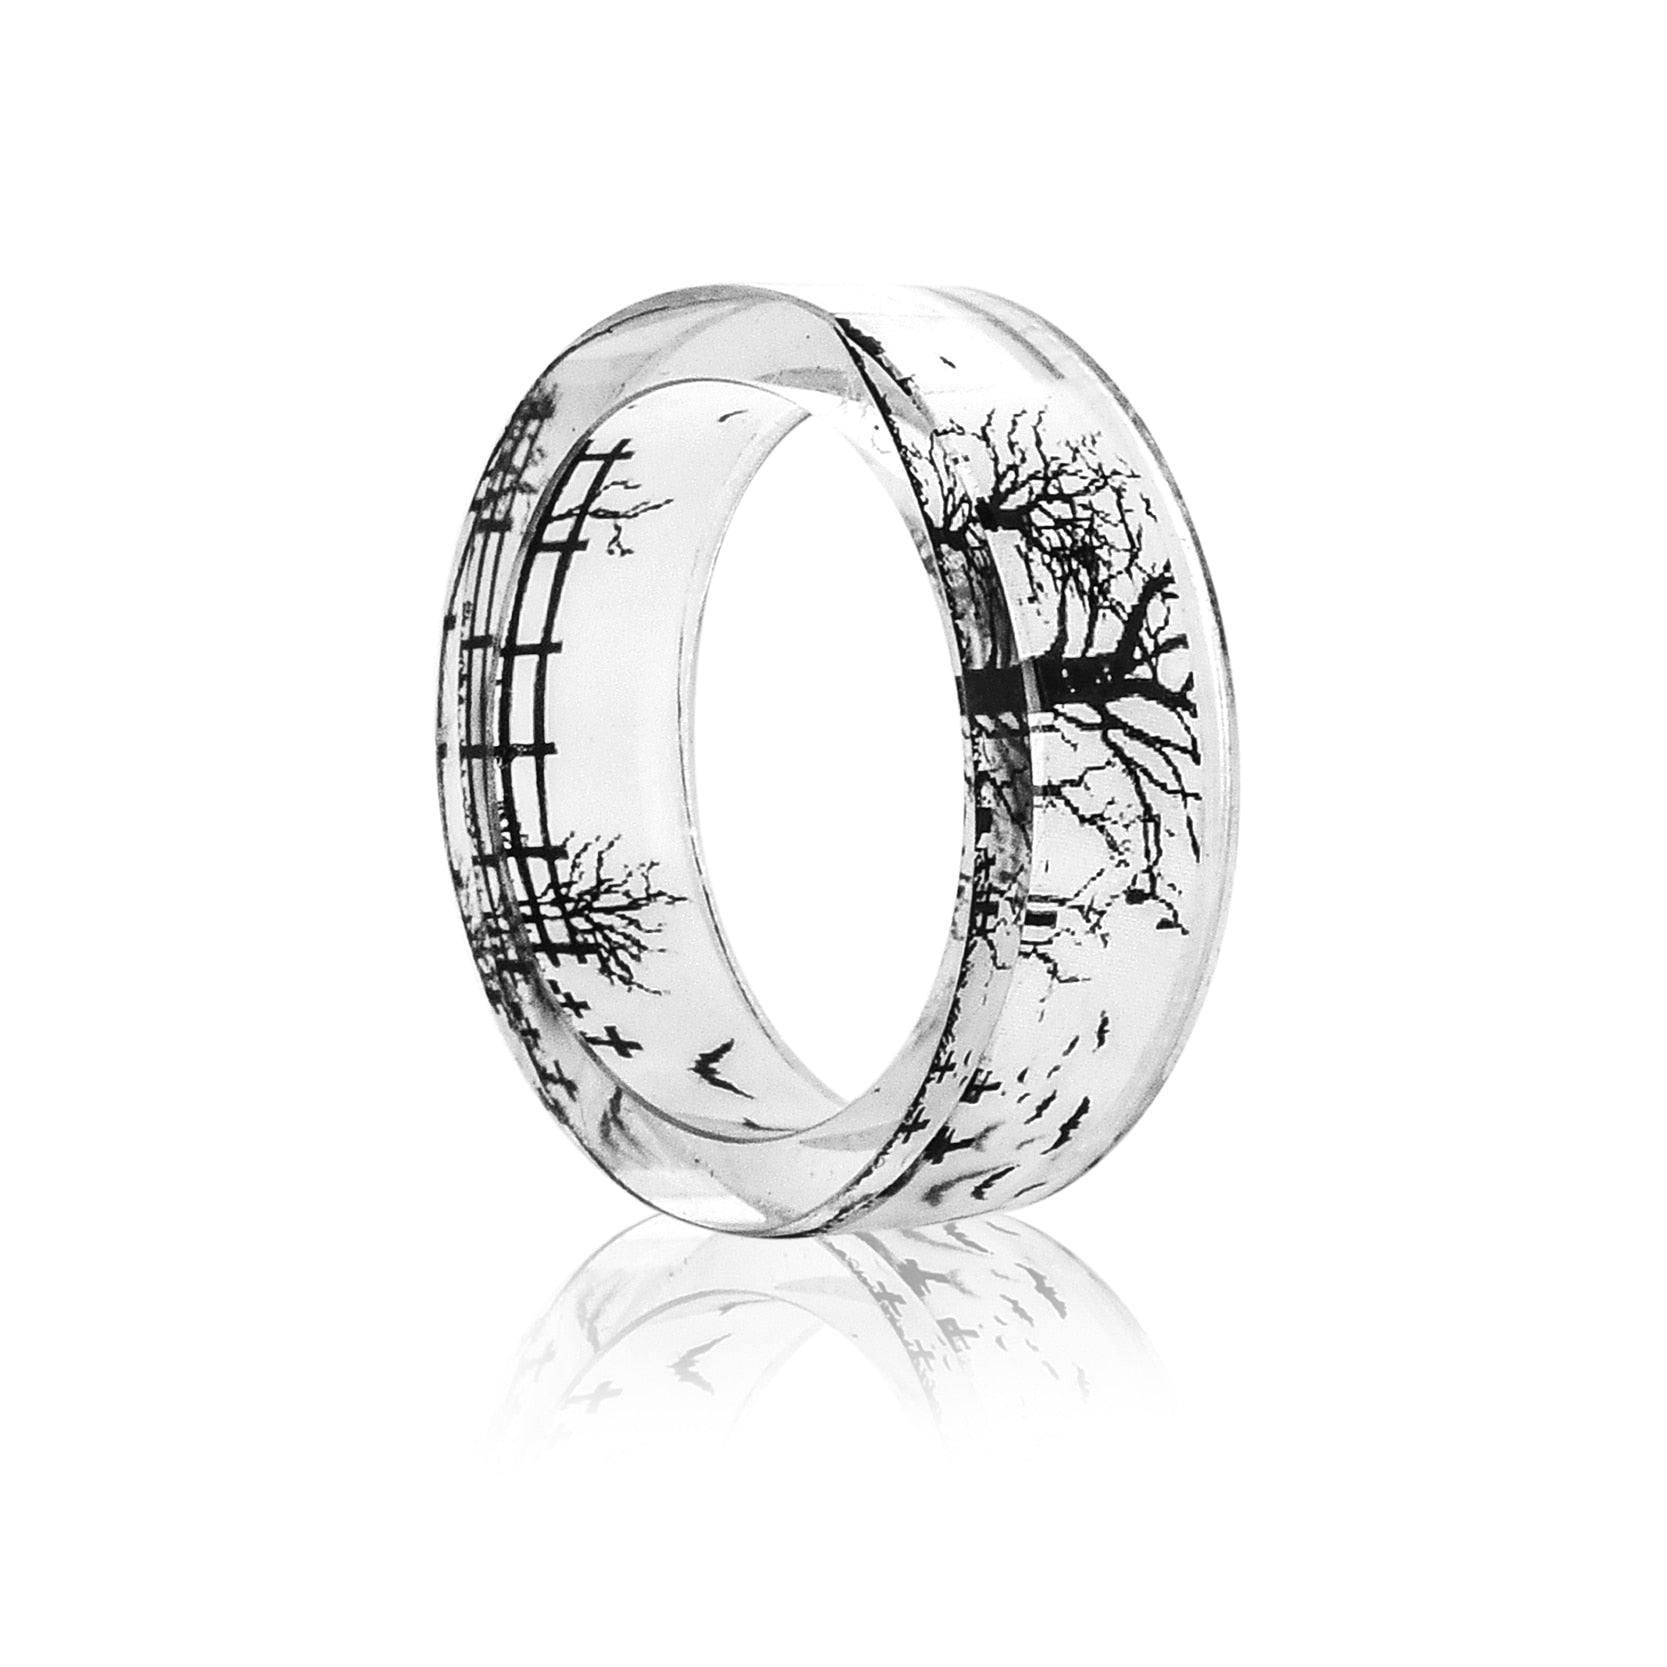 Zen Mode Chinese Ink Painting Inspired Nightmare Chill Resin Ring